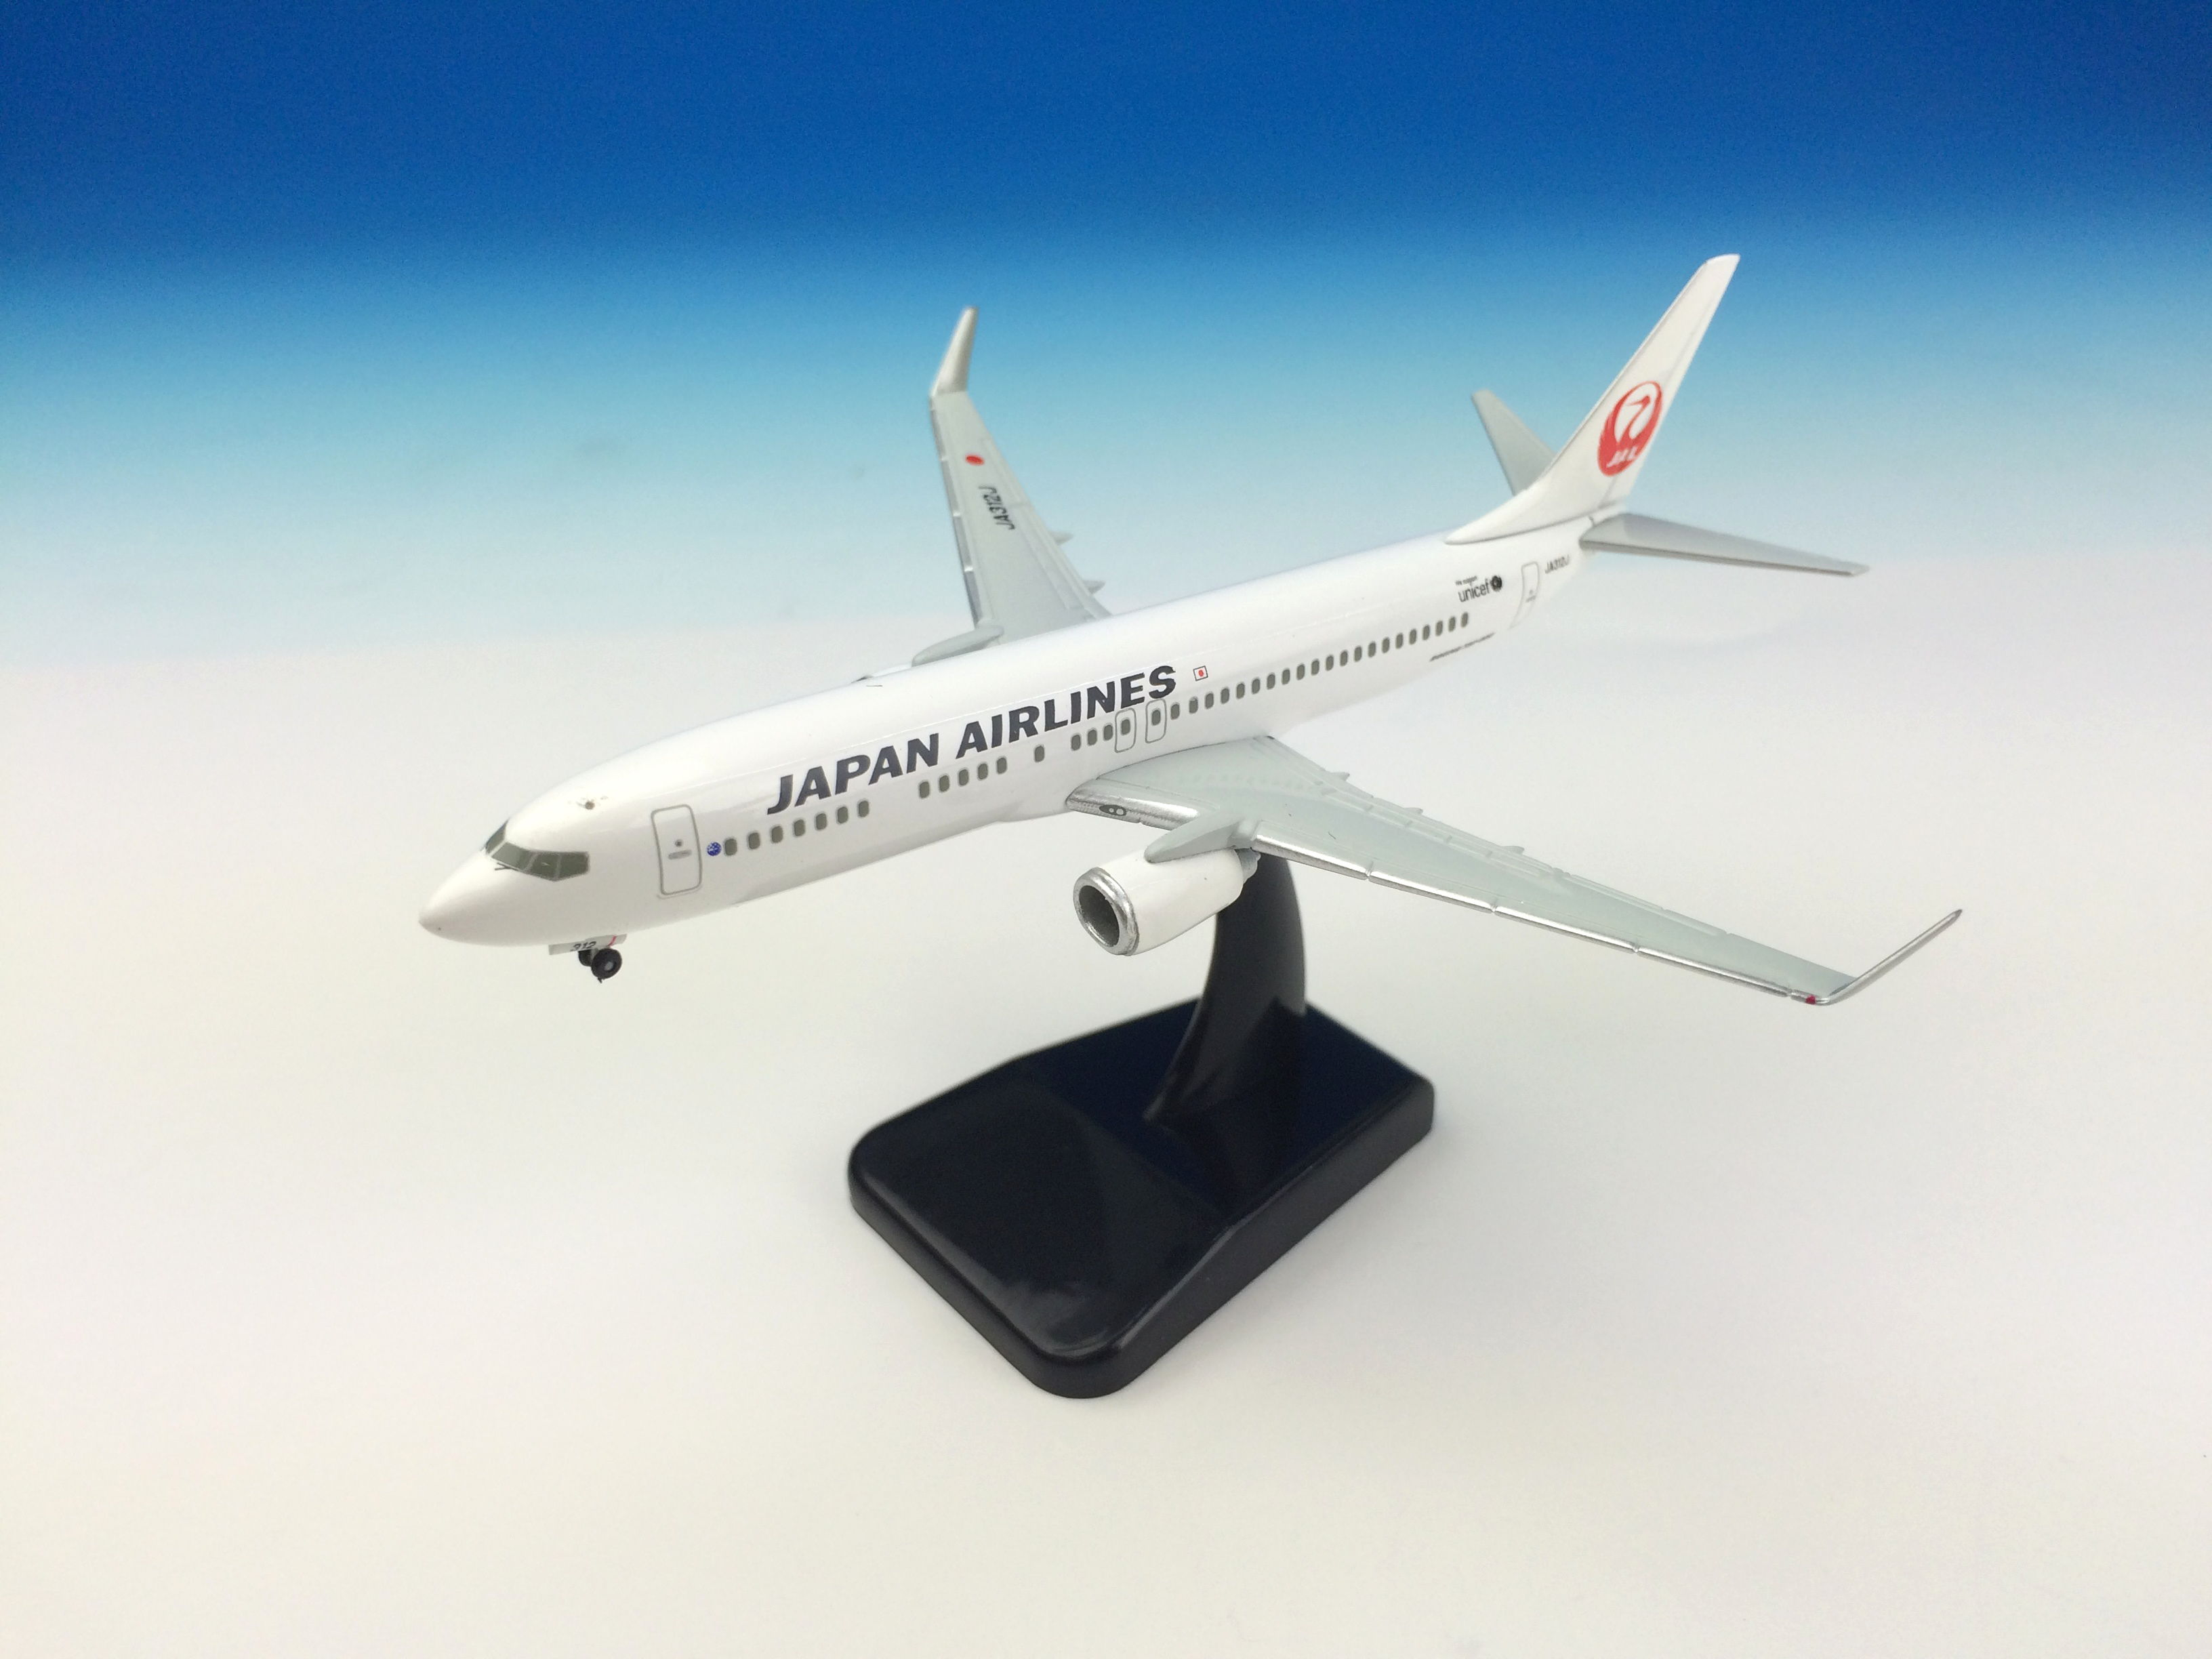 JAL/日本航空 JAL 737-800 1:400 ダイキャストモデル